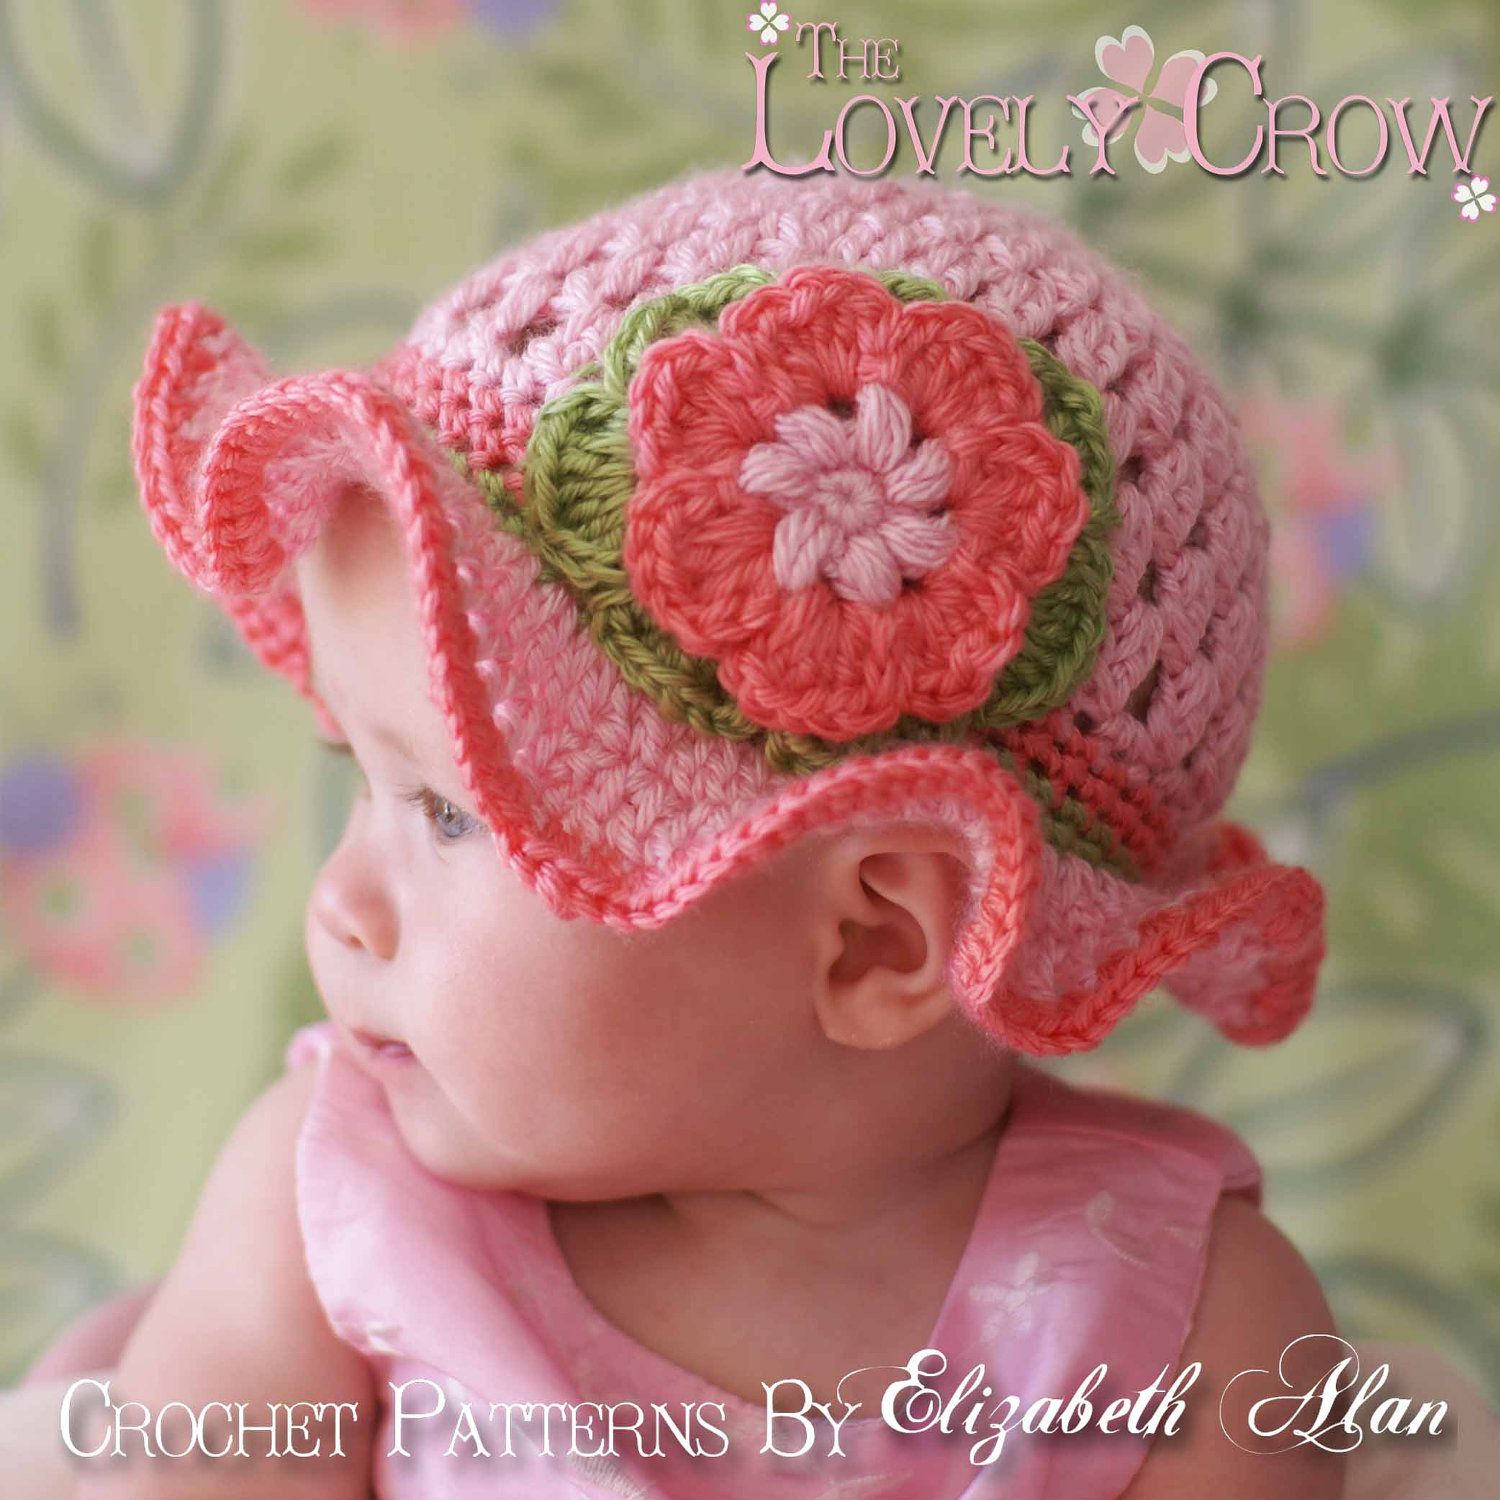 Free crochet baby hat patterns baby girl sun hat crochet pattern free crochet baby hat patterns baby girl sun hat crochet pattern for teaparty hat bankloansurffo Image collections